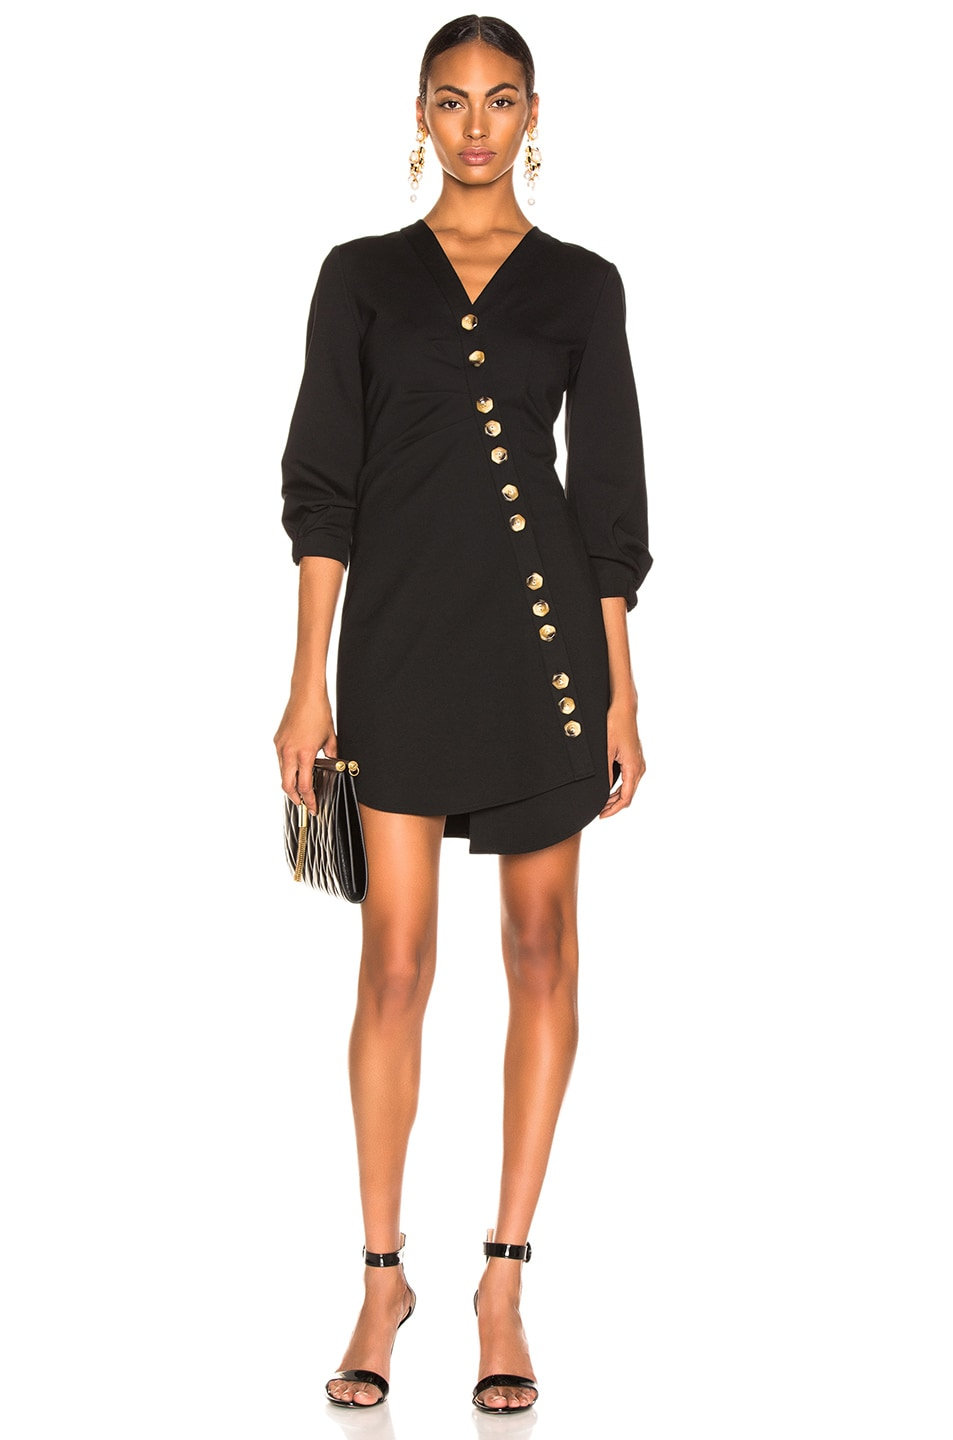 317a4fb10161 Image 1 of Tibi Asymmetrical Shirt Dress in Black